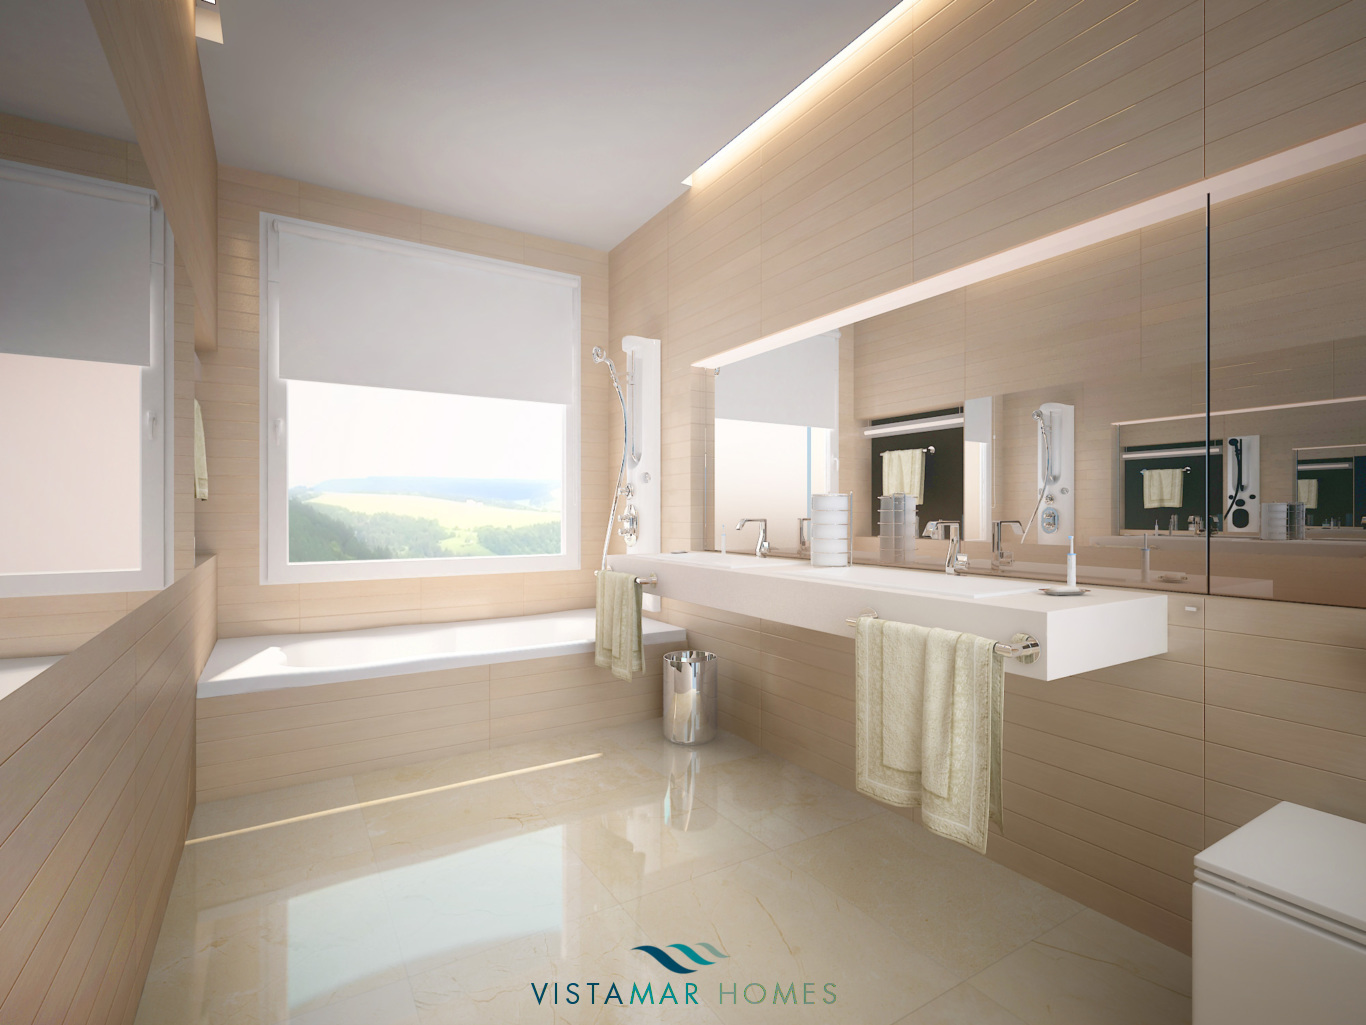 VMV028-linda-vista-new-off-plan-villa-for-sale-san-pedro-marbella-4